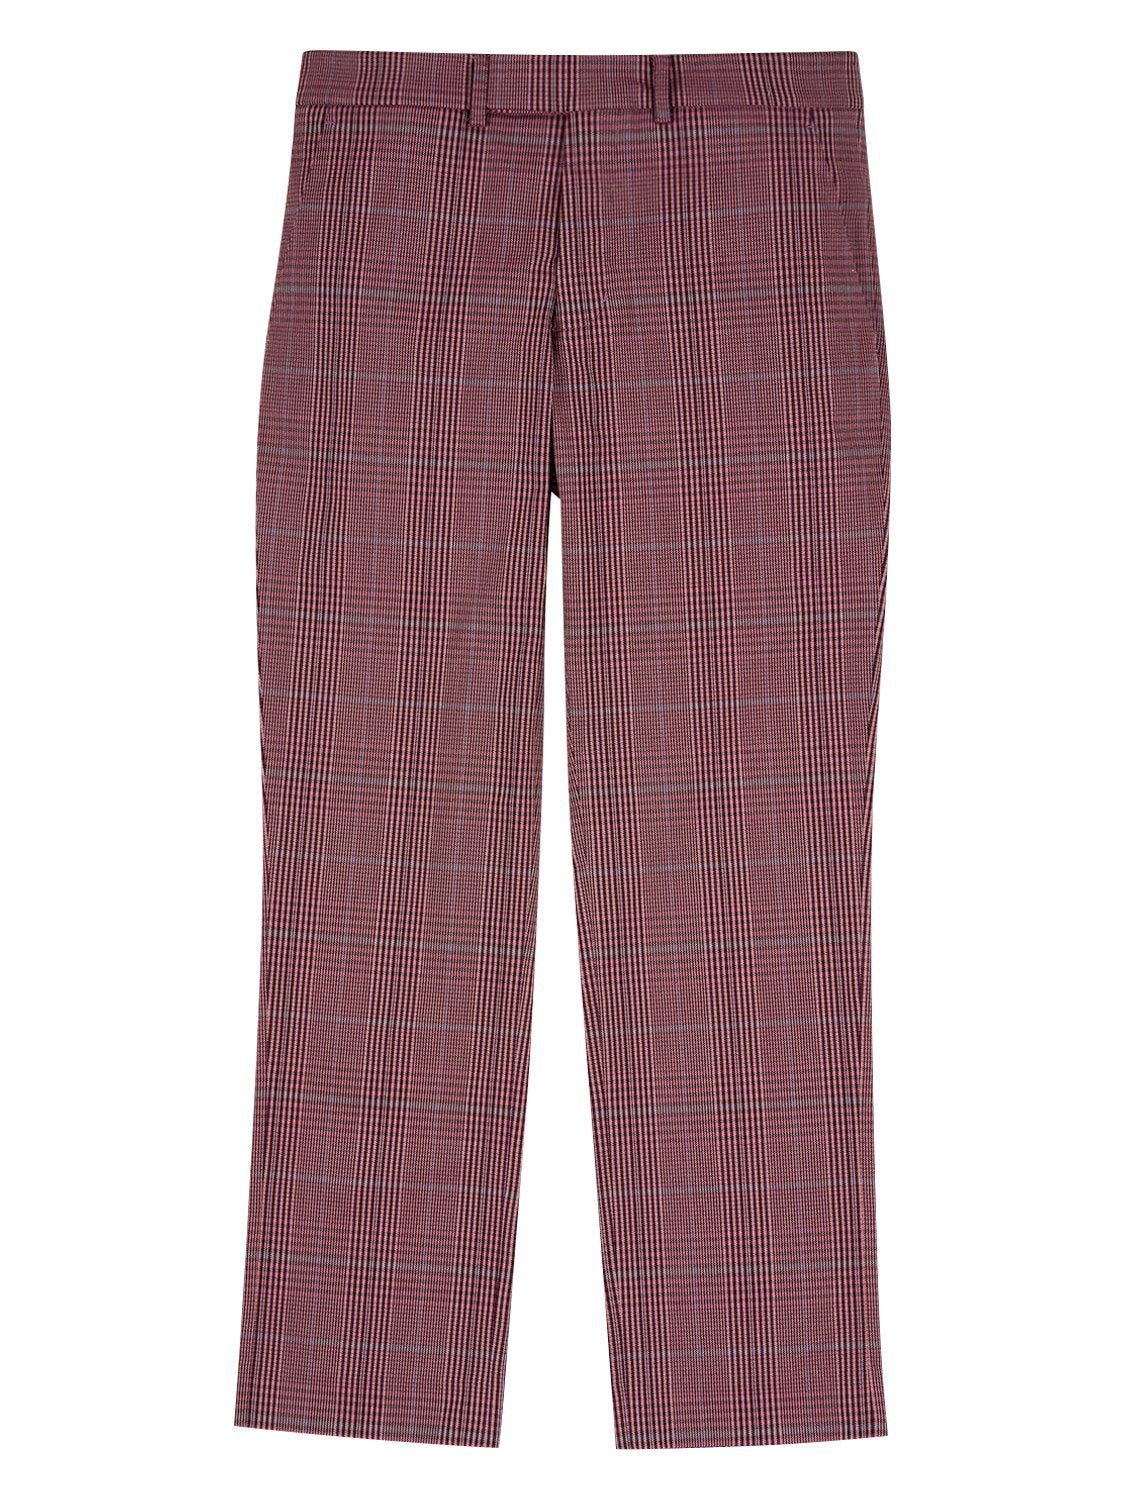 Pipe Trouser - Plaid